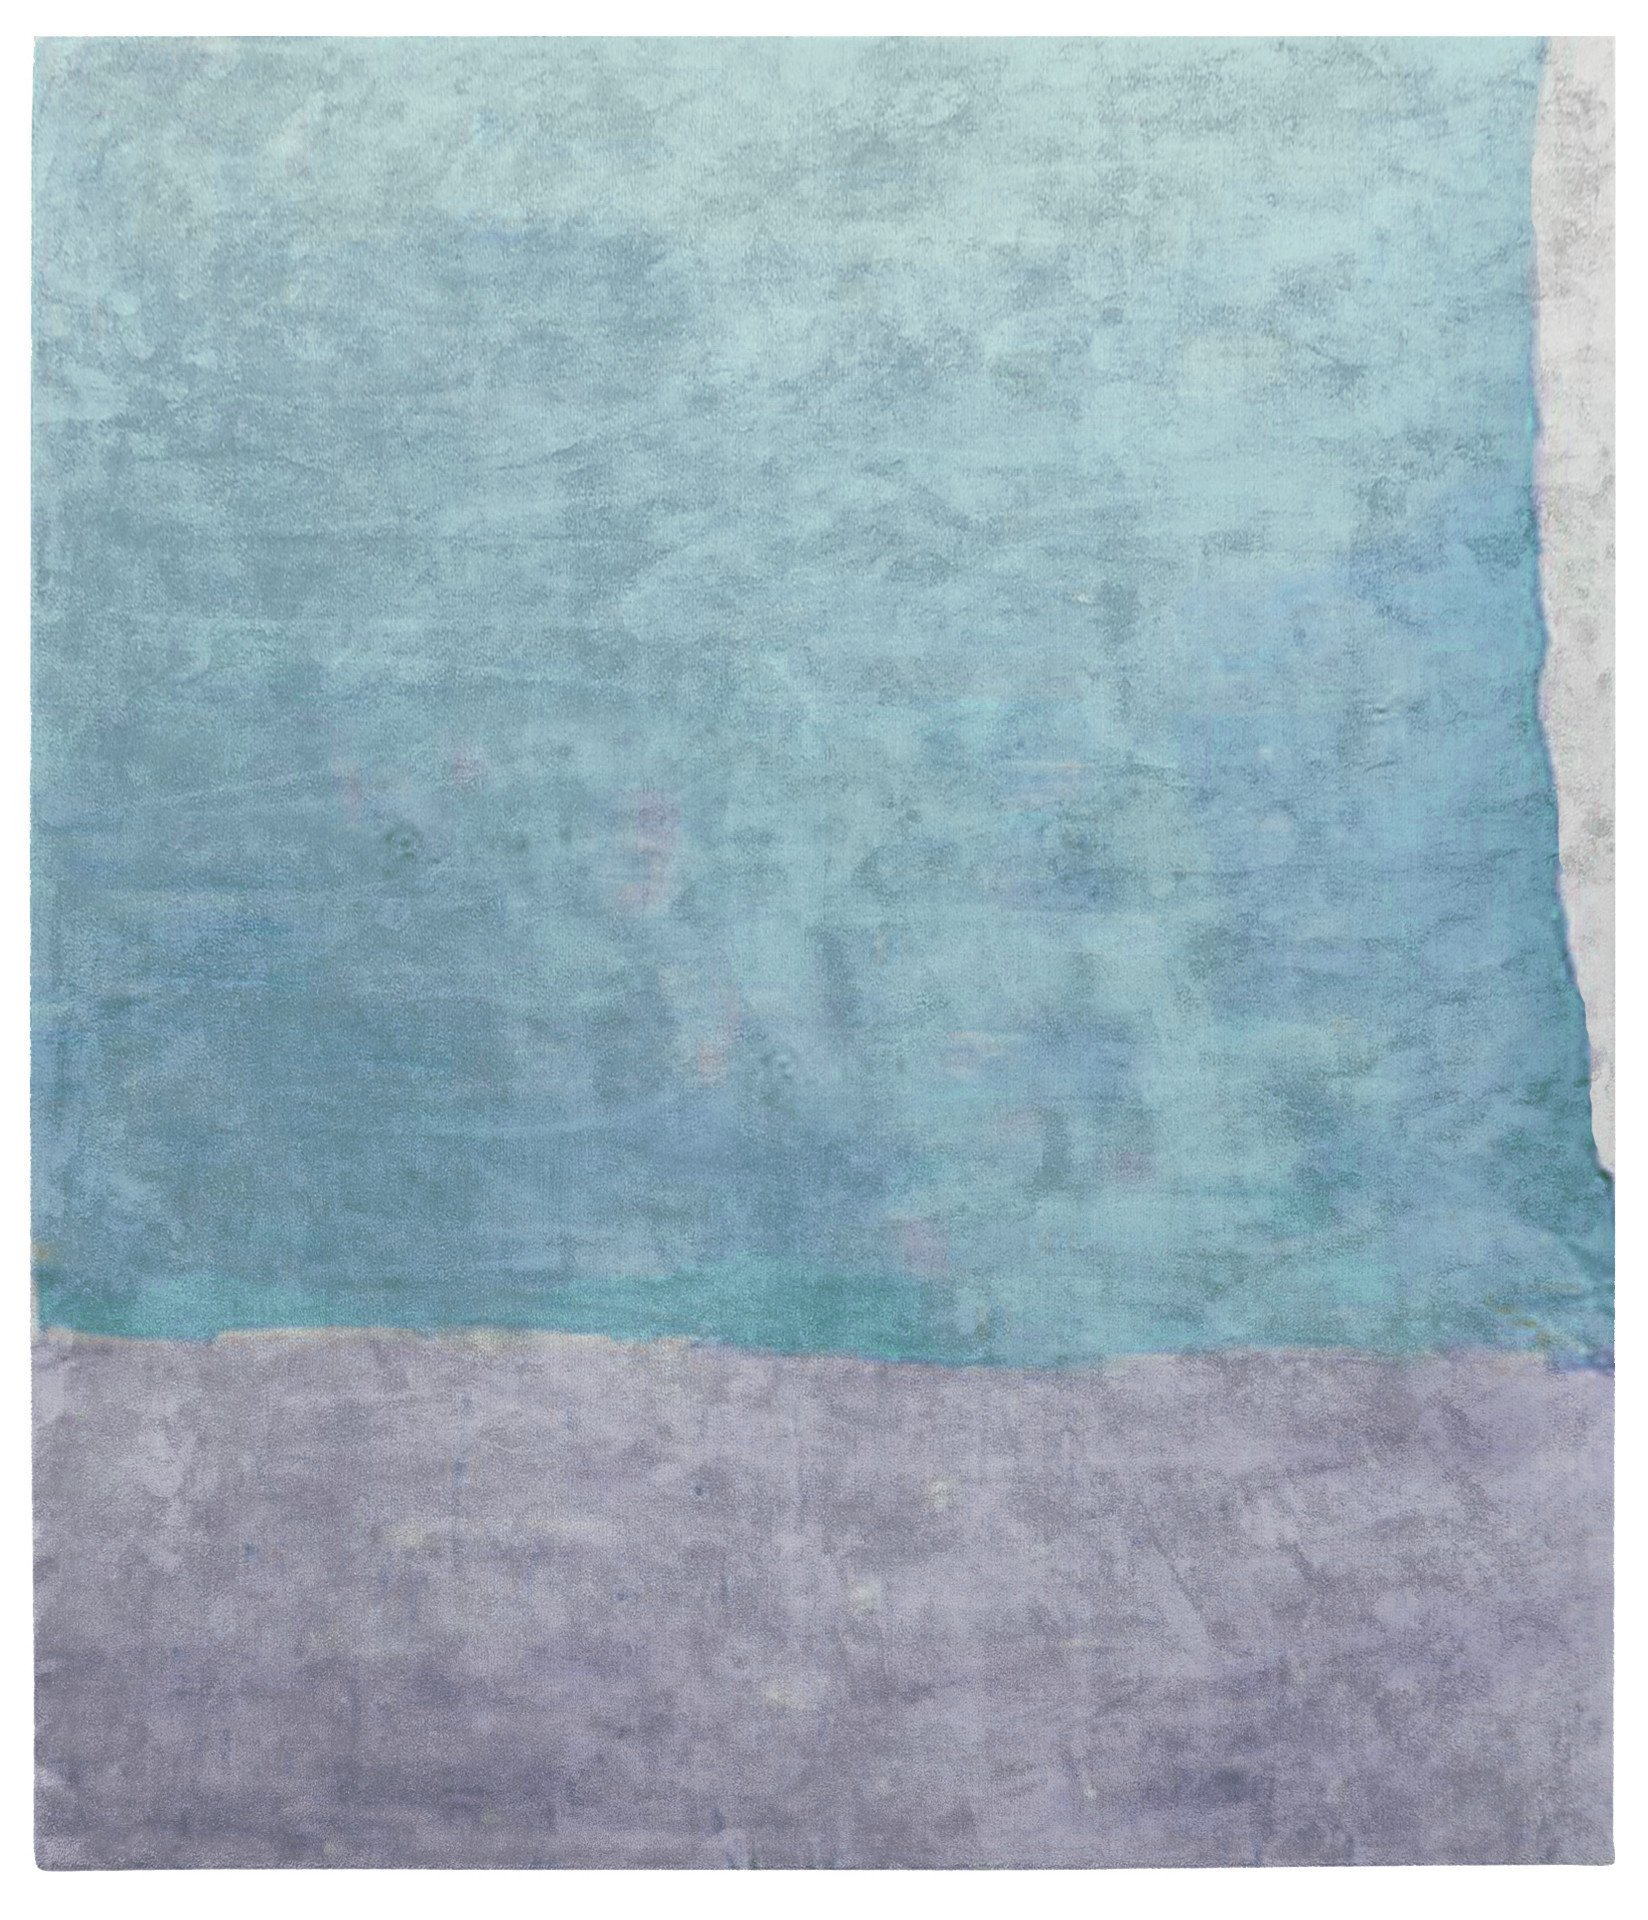 Cozzo Di Naro Hand Tufted Rug in Light Blue design by Second Studio